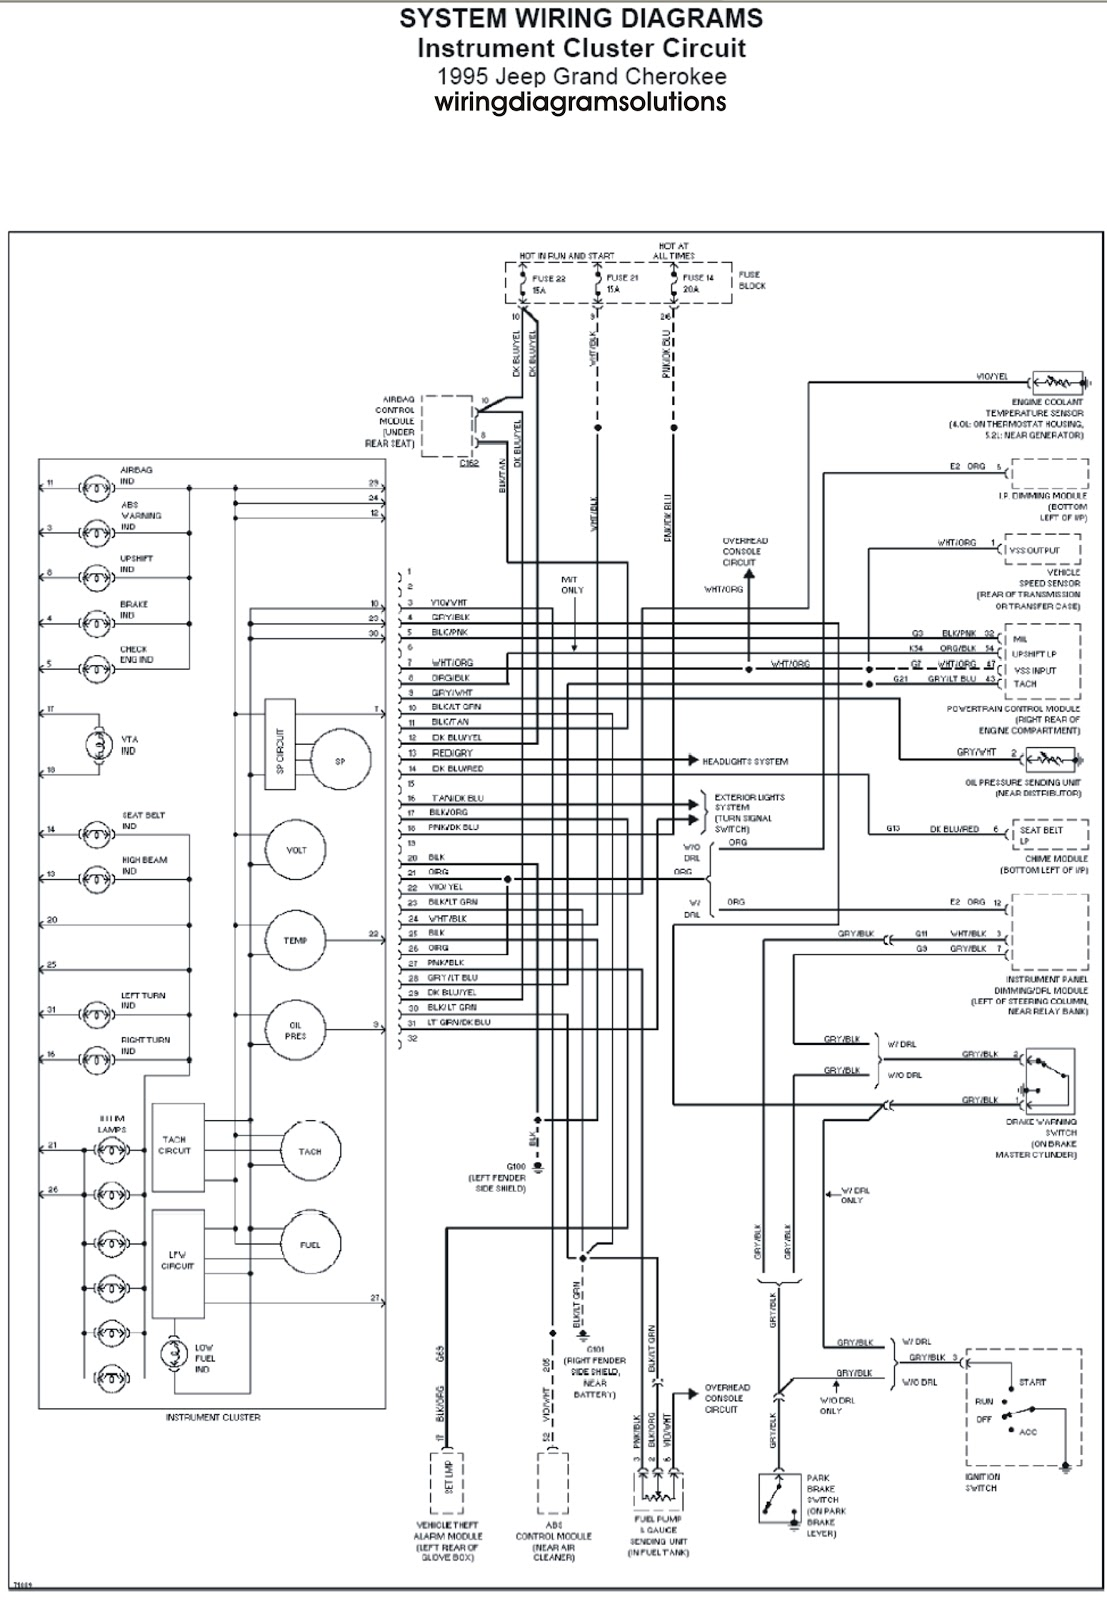 2004 Jeep Grand Cherokee Wiring Harness Diagram Just Data 1998 4 0 Schematic Simple 2006 Dodge Charger